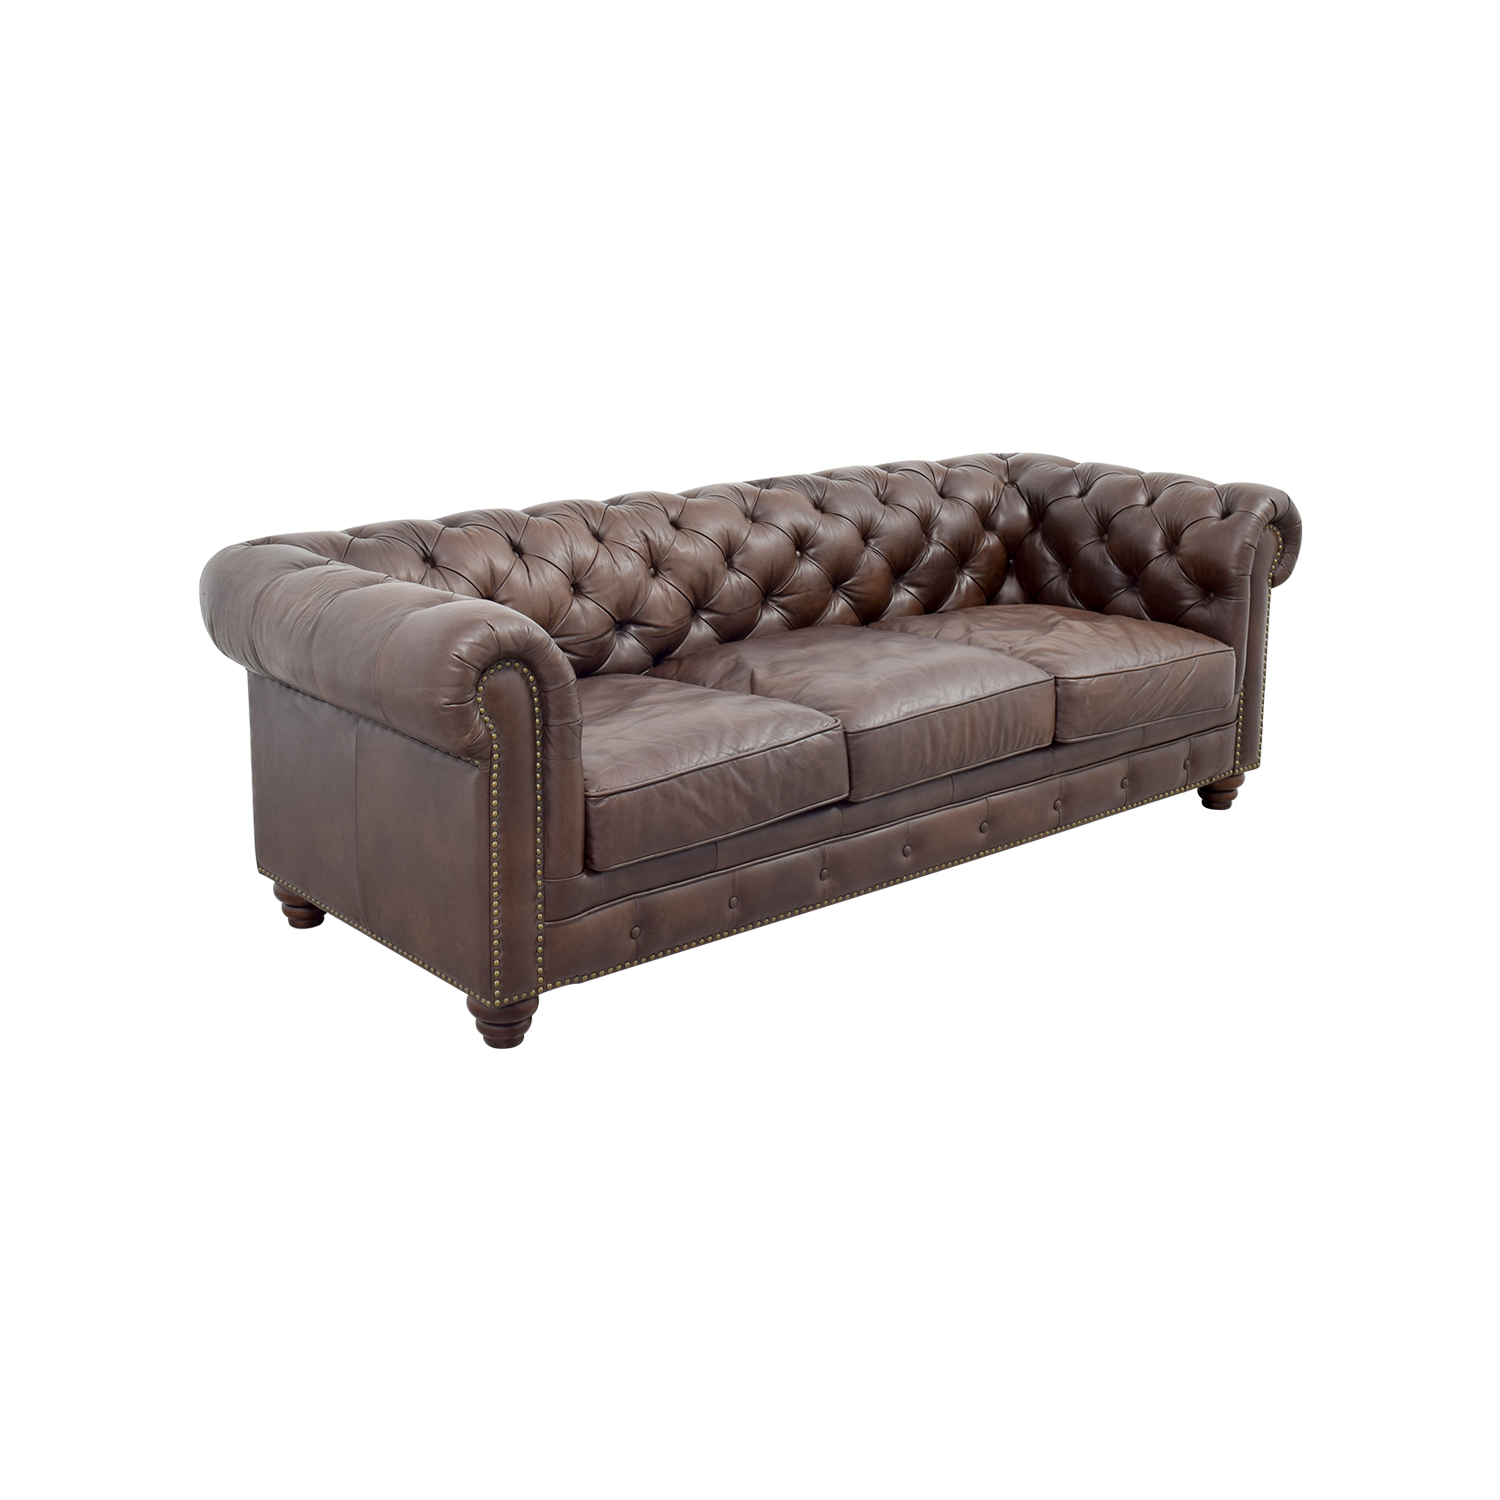 36 off raymour flanigan raymour flanigan bellanest saddler tufted leather sofa sofas Couches and loveseats